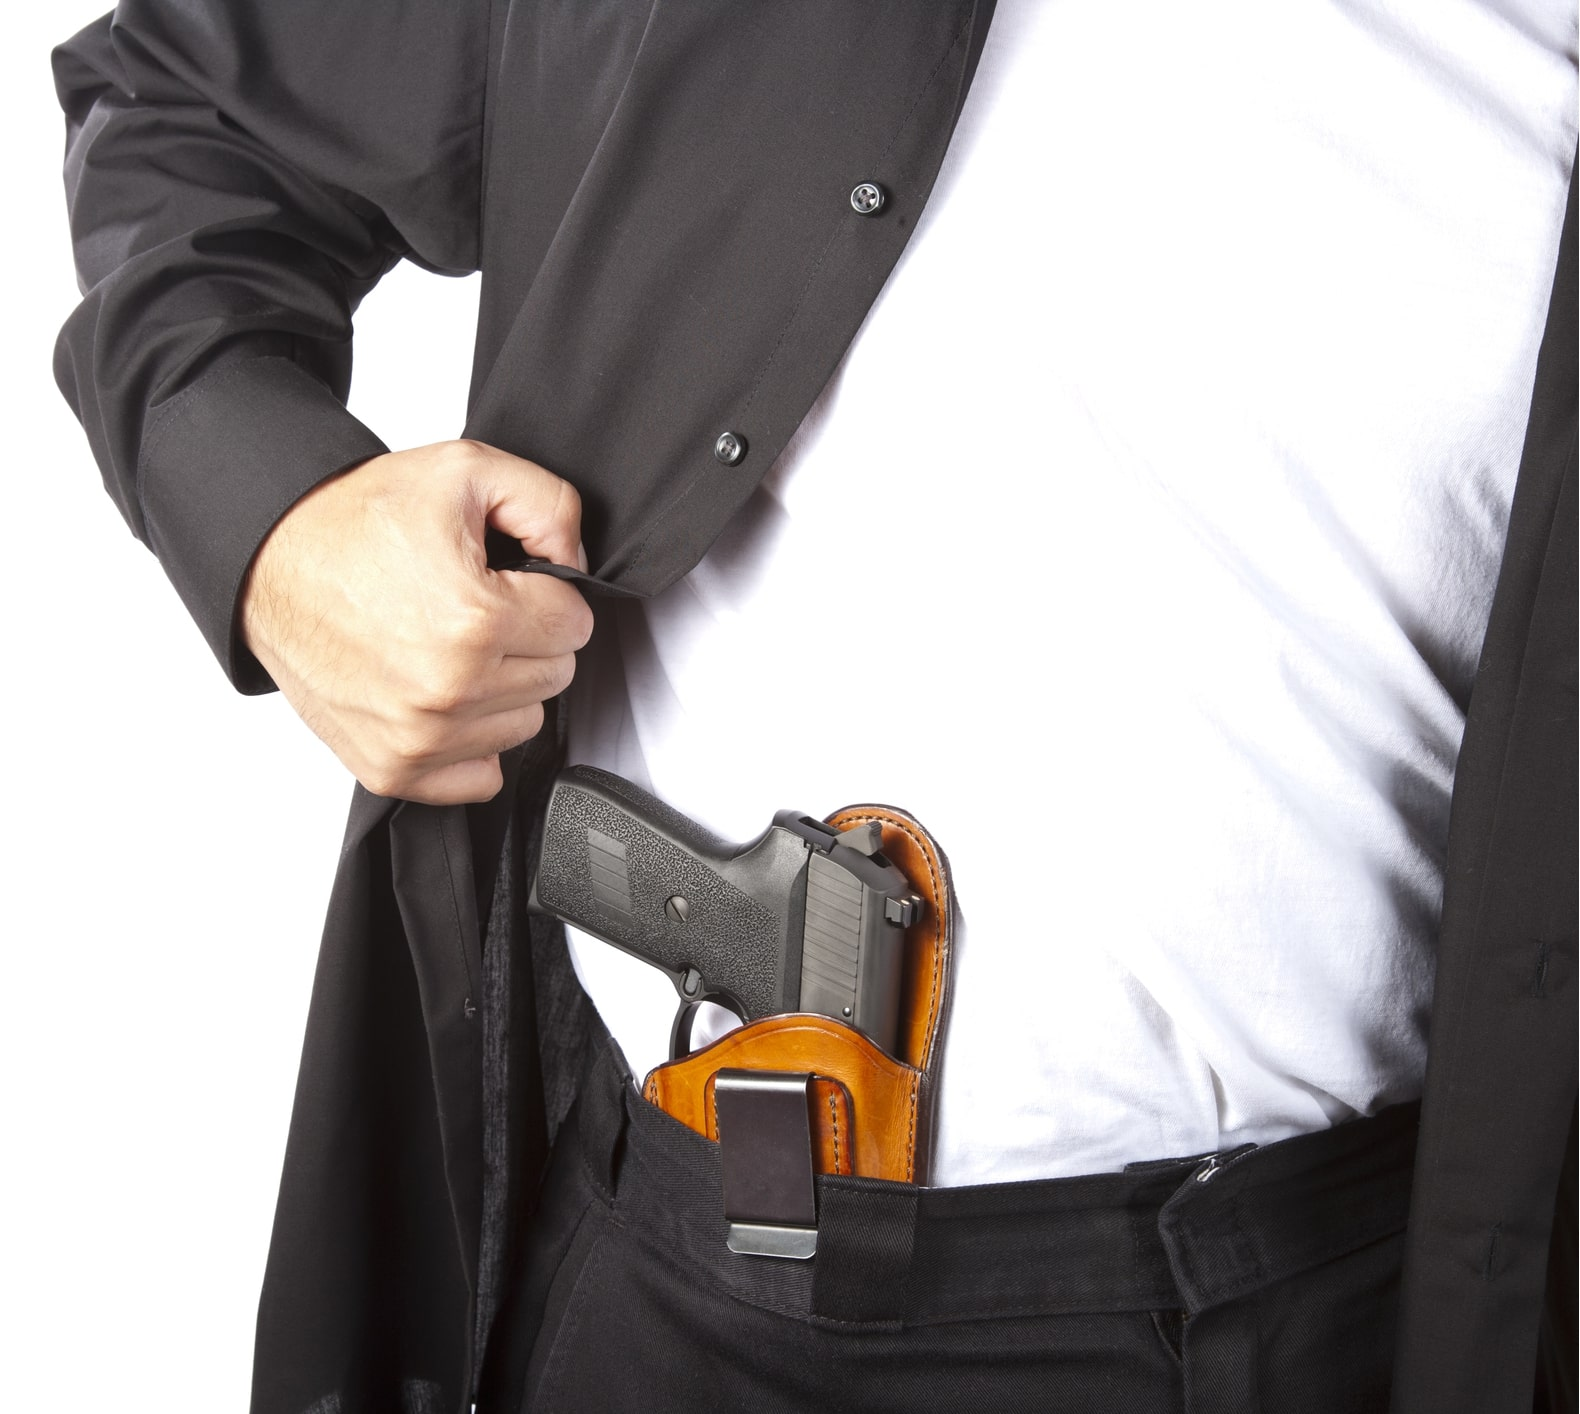 Firearms Liability & Concealed Carry Insurance